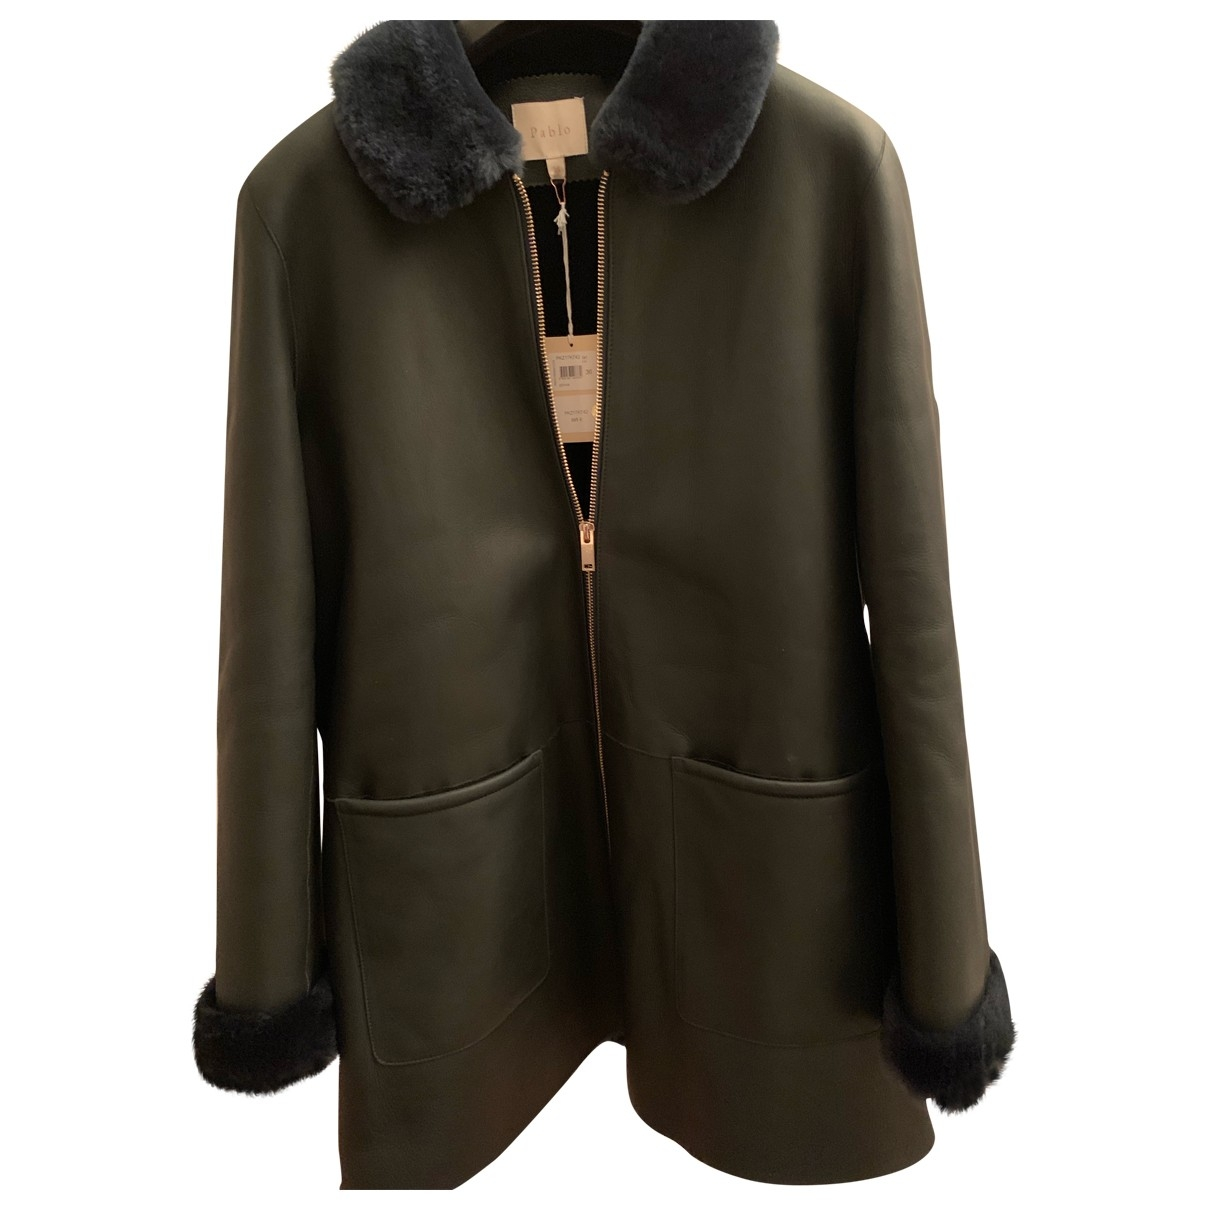 Pablo \N Green Leather coat for Women 36 FR